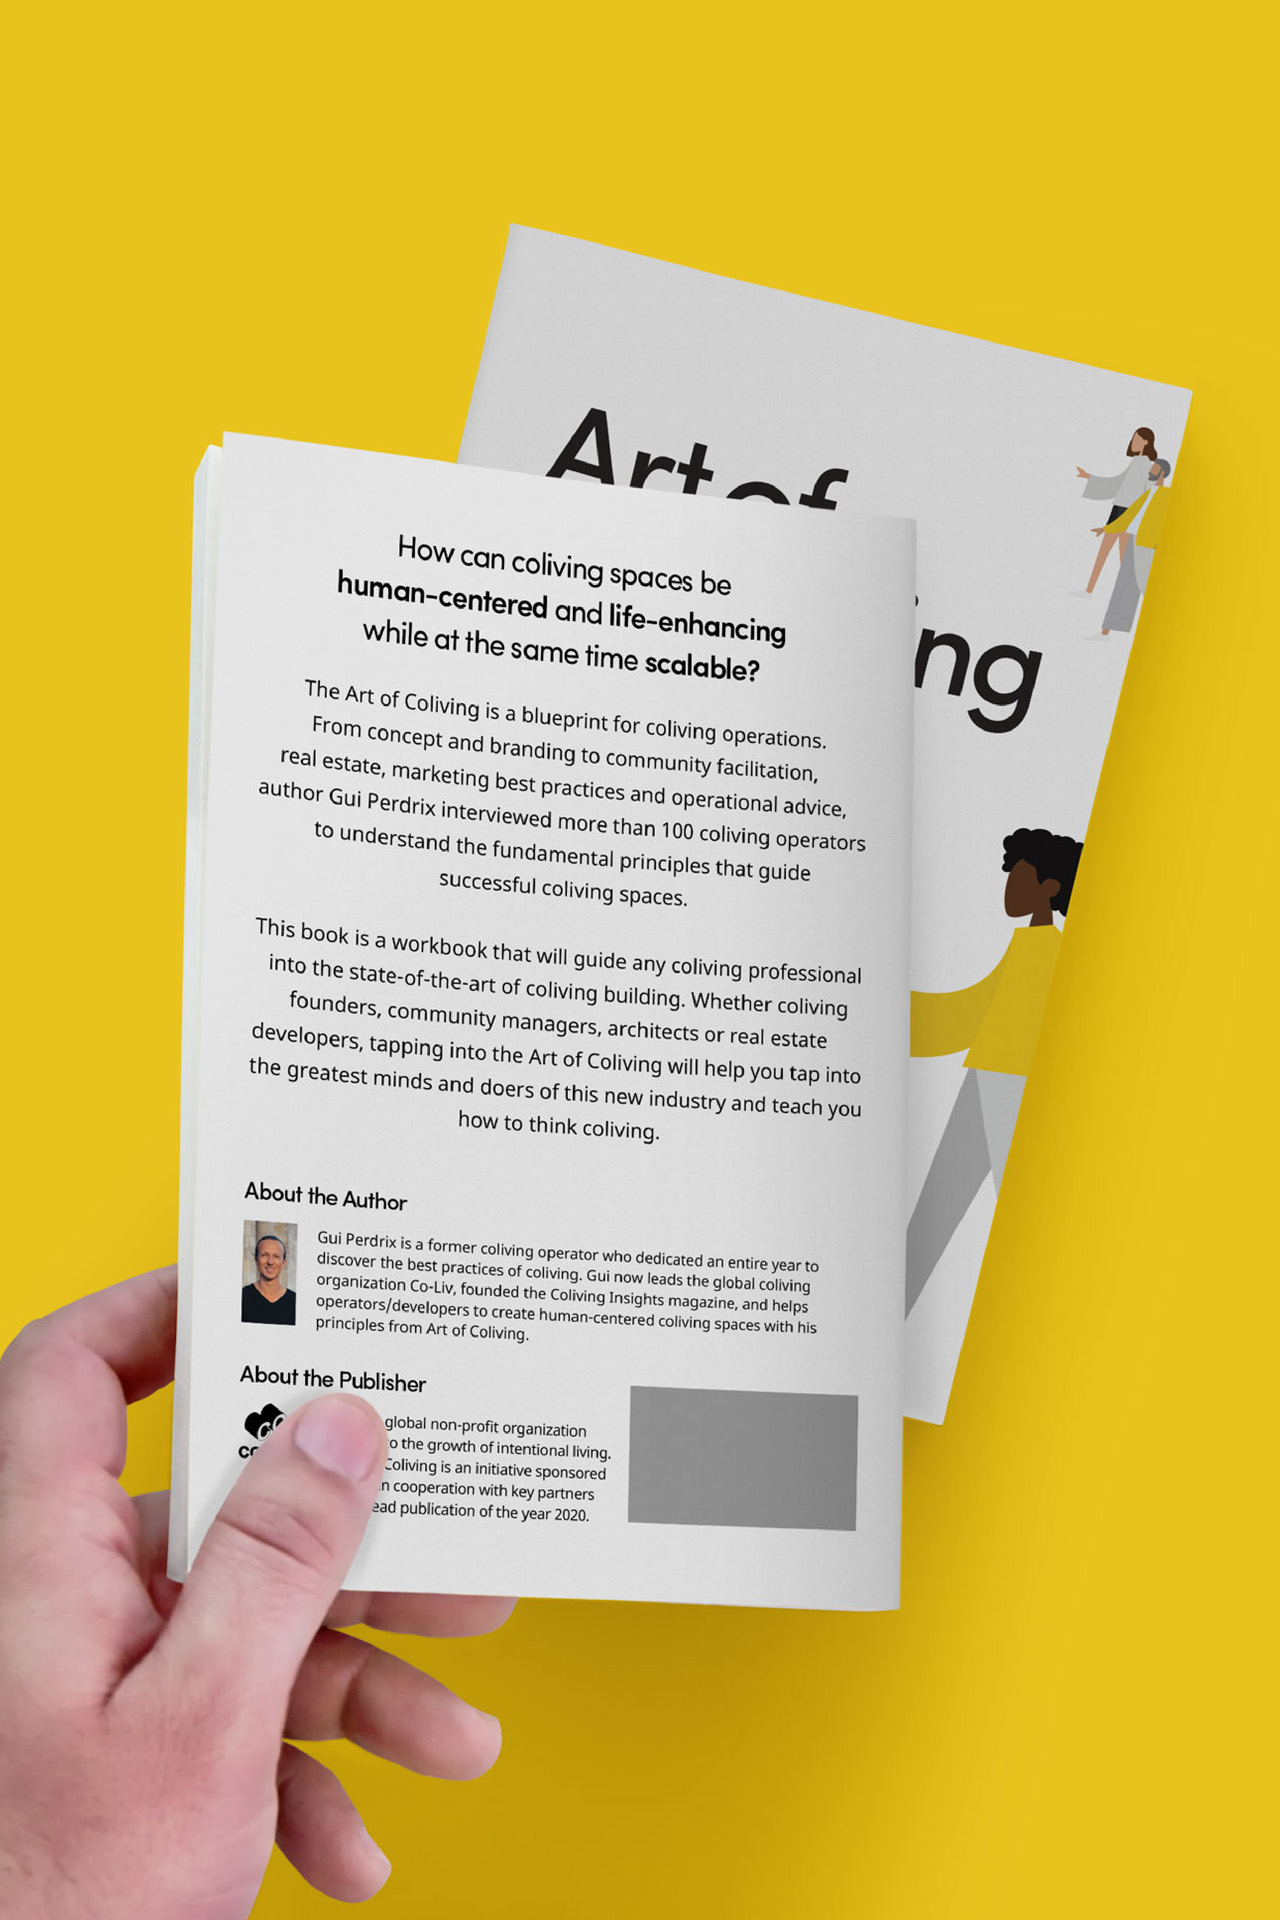 Art of Coliving by Gui Perdrix book back cover design by SPX Agency